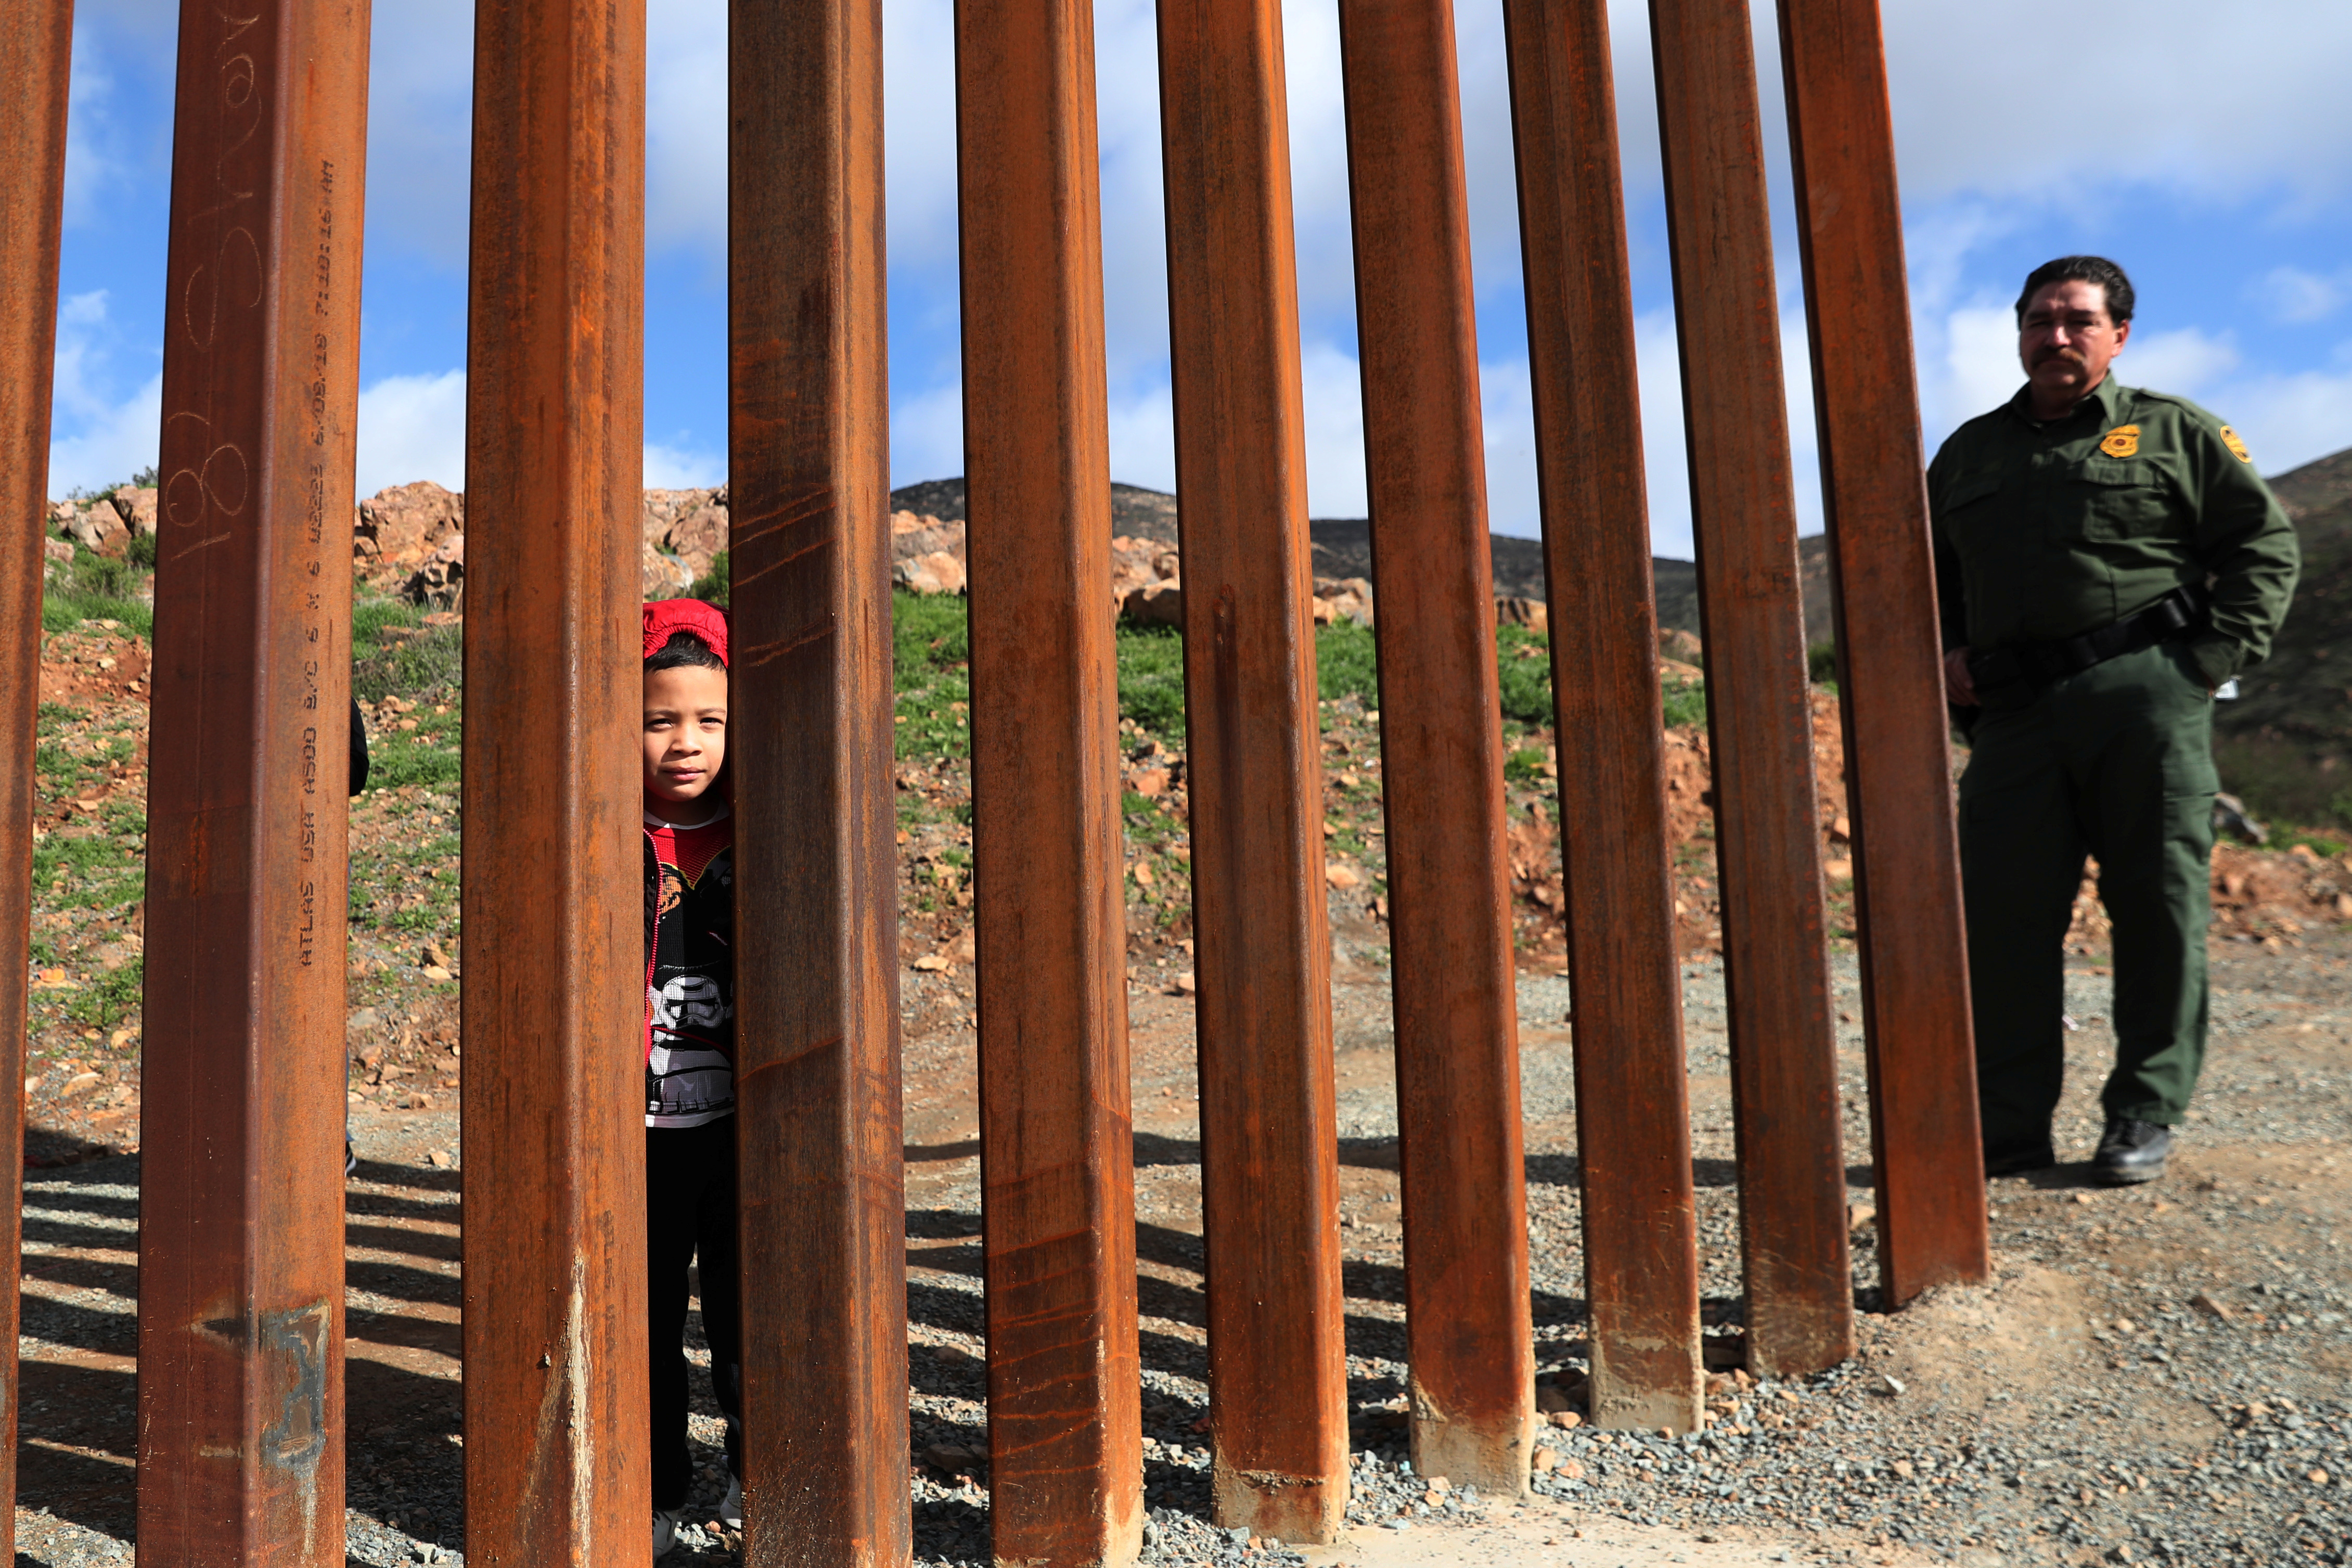 A boy from Honduras looks through the U.S. and Mexico border fence after being detained by U.S. Border Patrol in Tijuana, Mexico, January 21, 2019. REUTERS/Shannon Stapleton